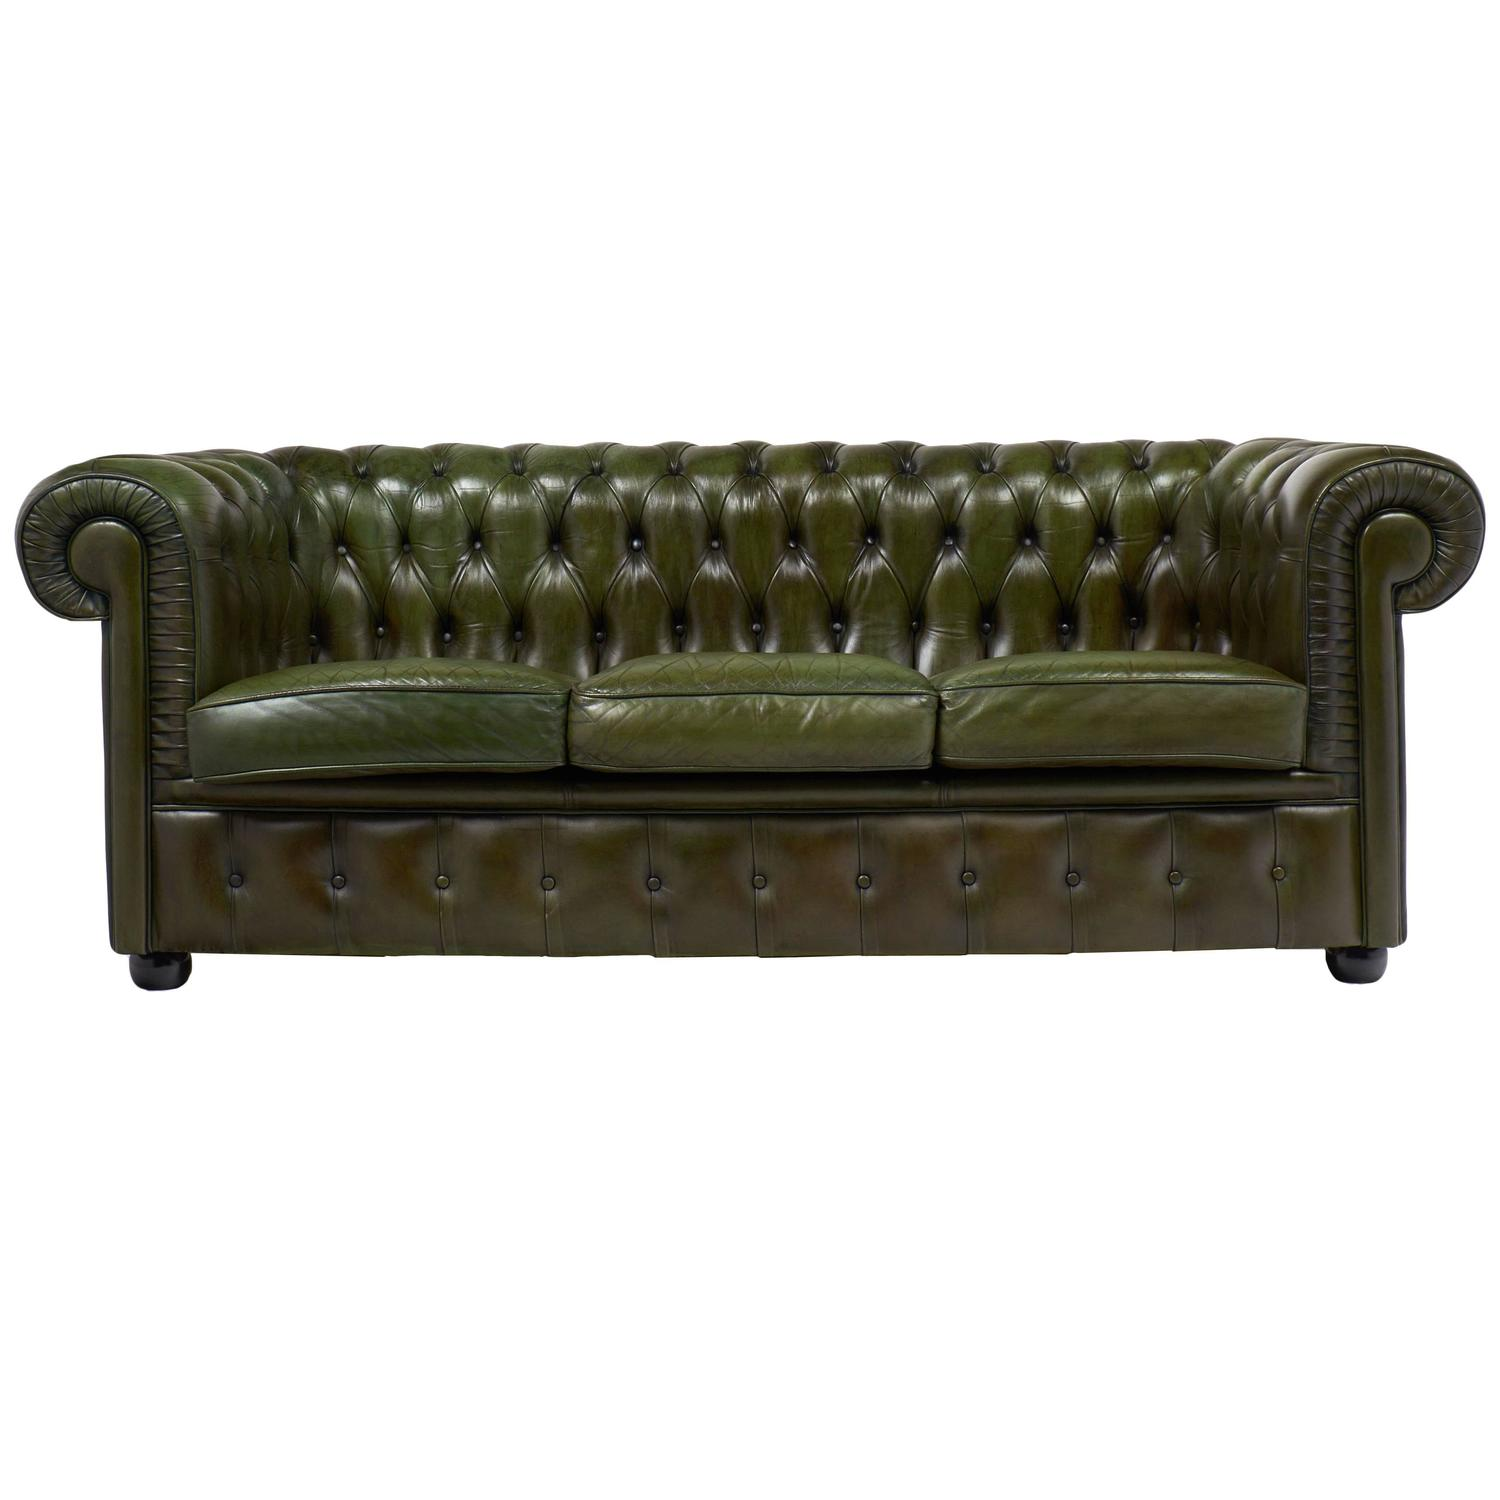 English Vintage Green Or Bronze Chesterfield Sofa At 1stdibs